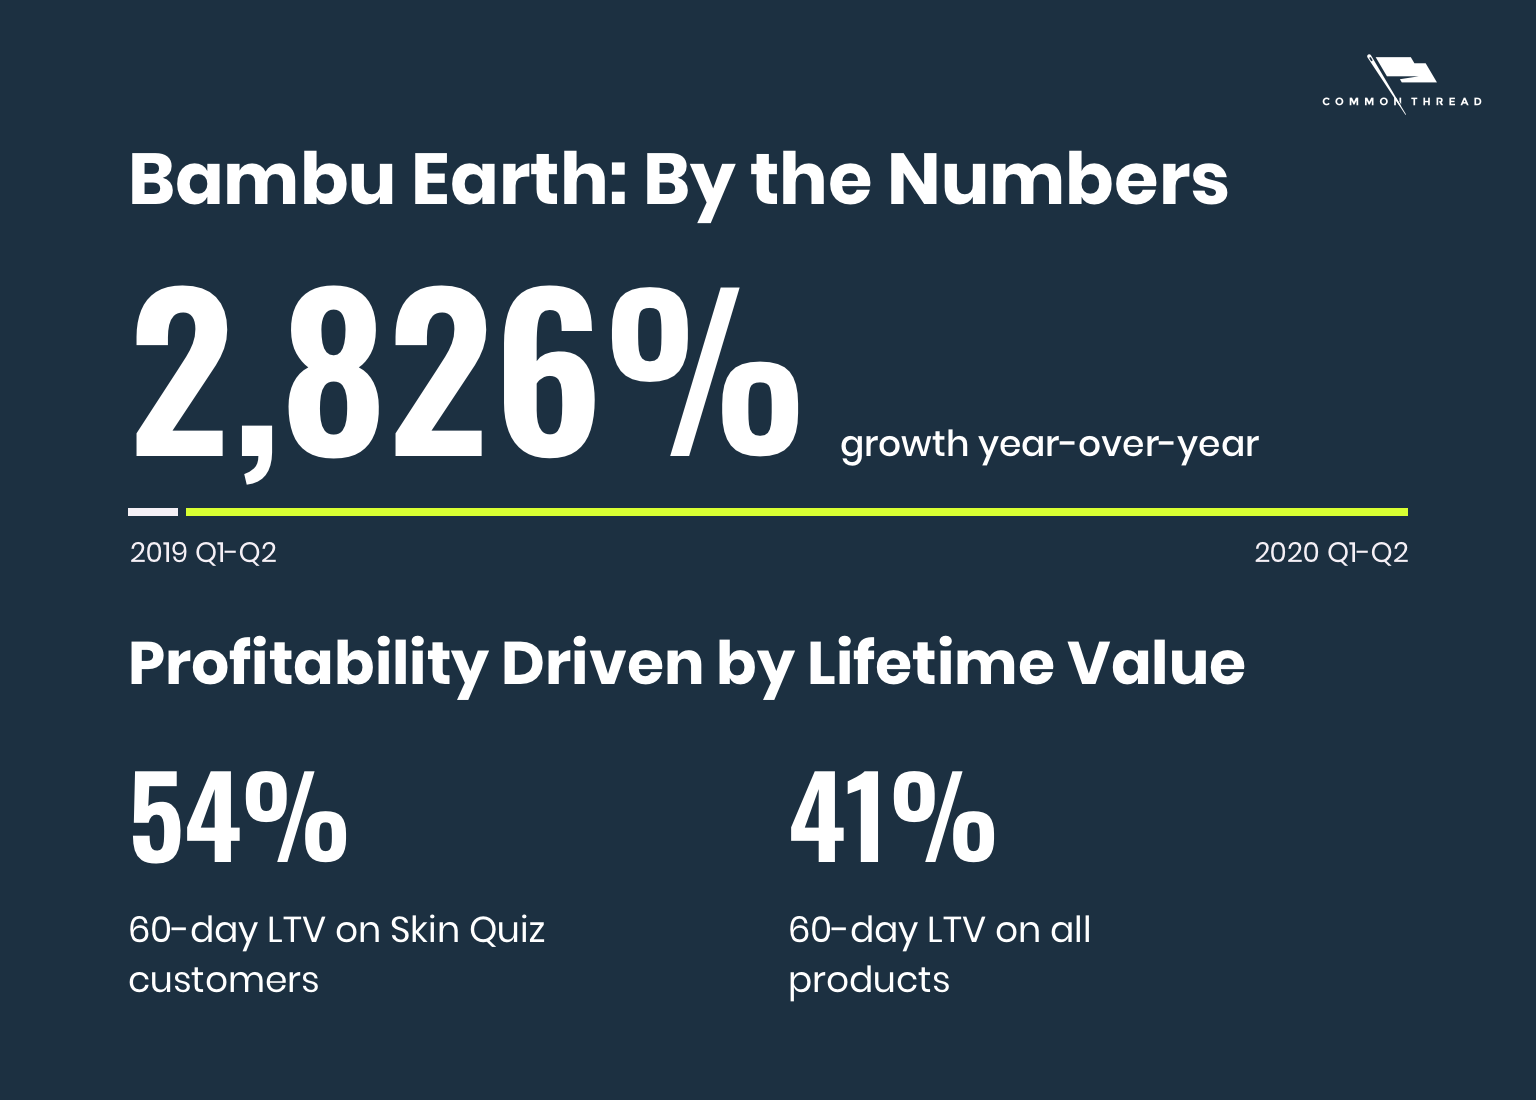 Bambu Earth By the Numbers: 2826% growth year-over-year comparing Q1-Q2 2019 to Q1-Q2 2020. Profitability Driven by Lifetime Value: 54% 60-day LTV on Skin Quiz customers; 41% 60-day LTV on all products.